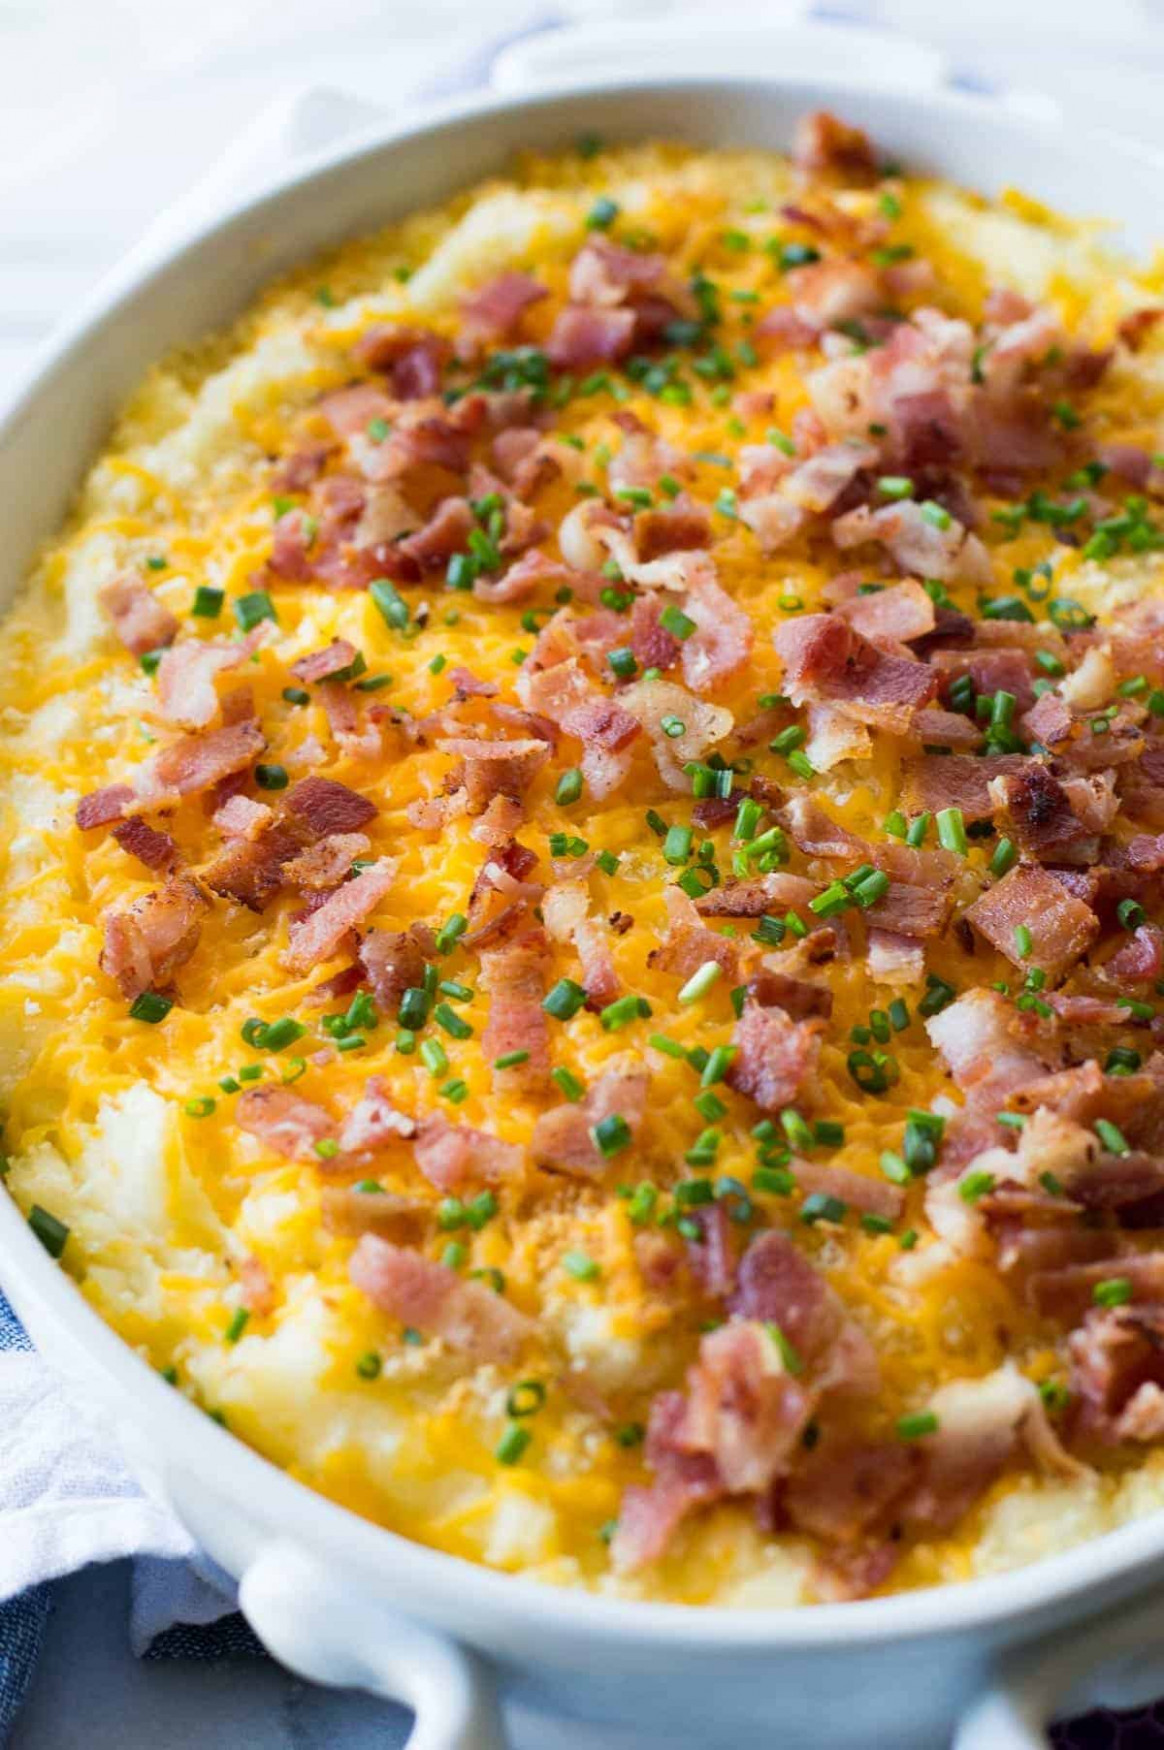 Mashed Potato Casserole - House of Yumm